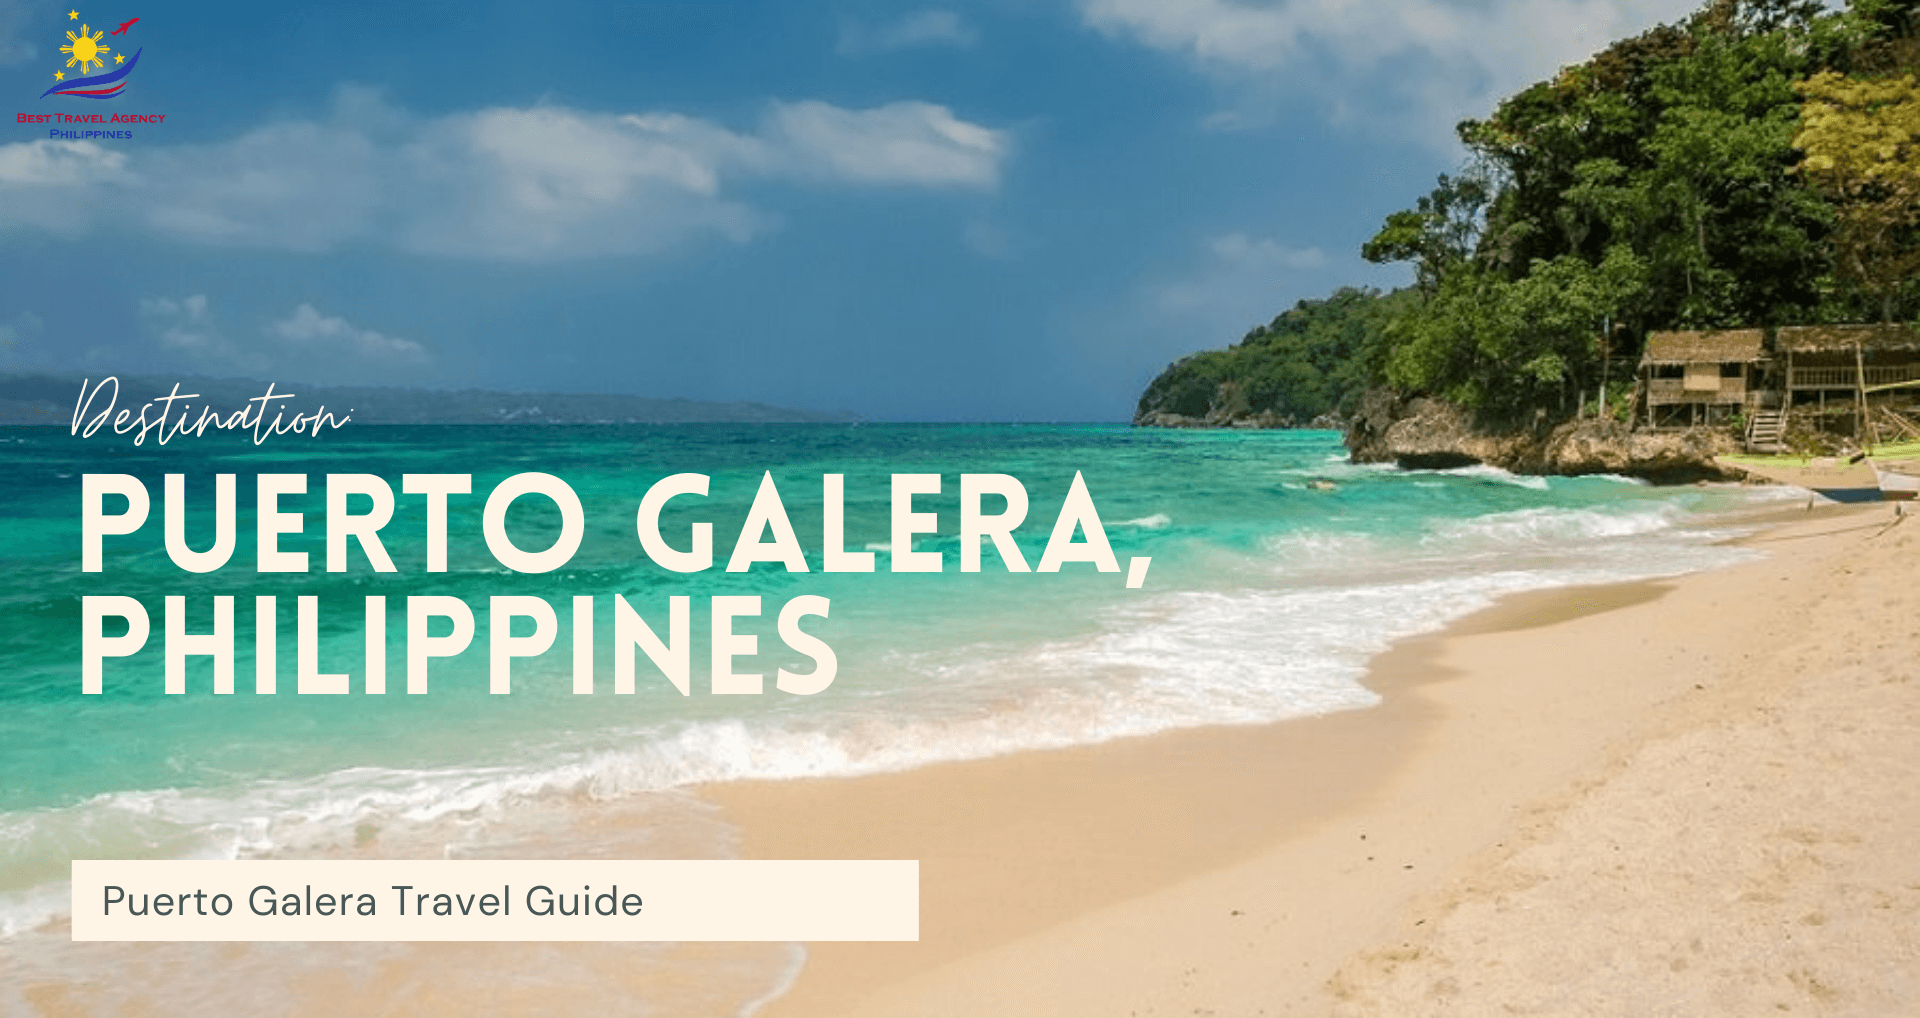 Puerto Galera Travel Guide